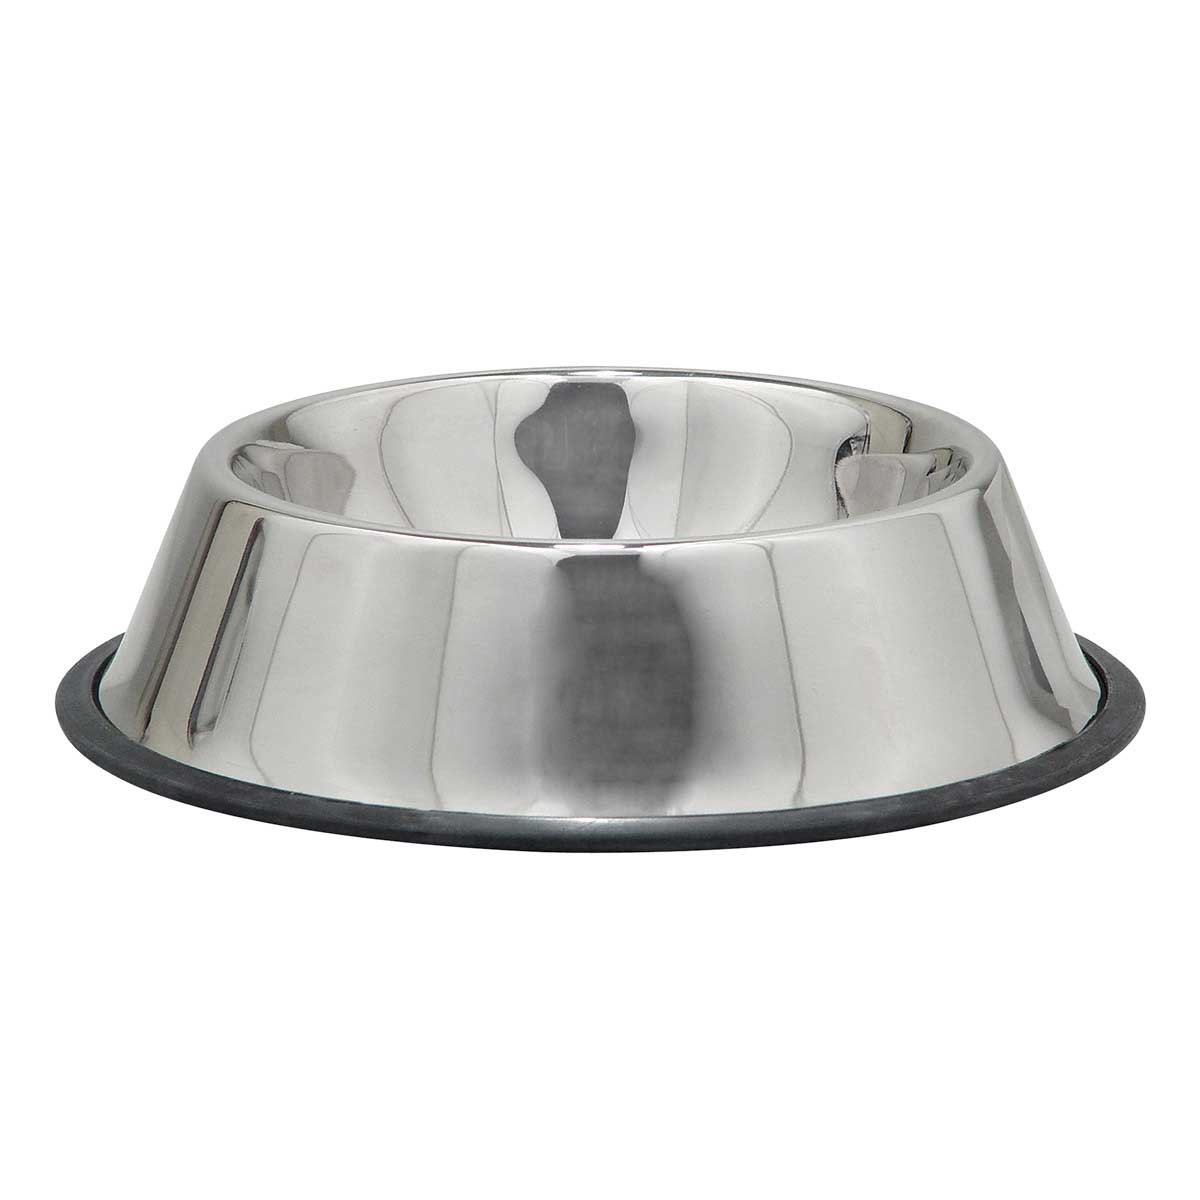 Indipets No-Tip Stainless Steel Dish for Pets 24 Oz